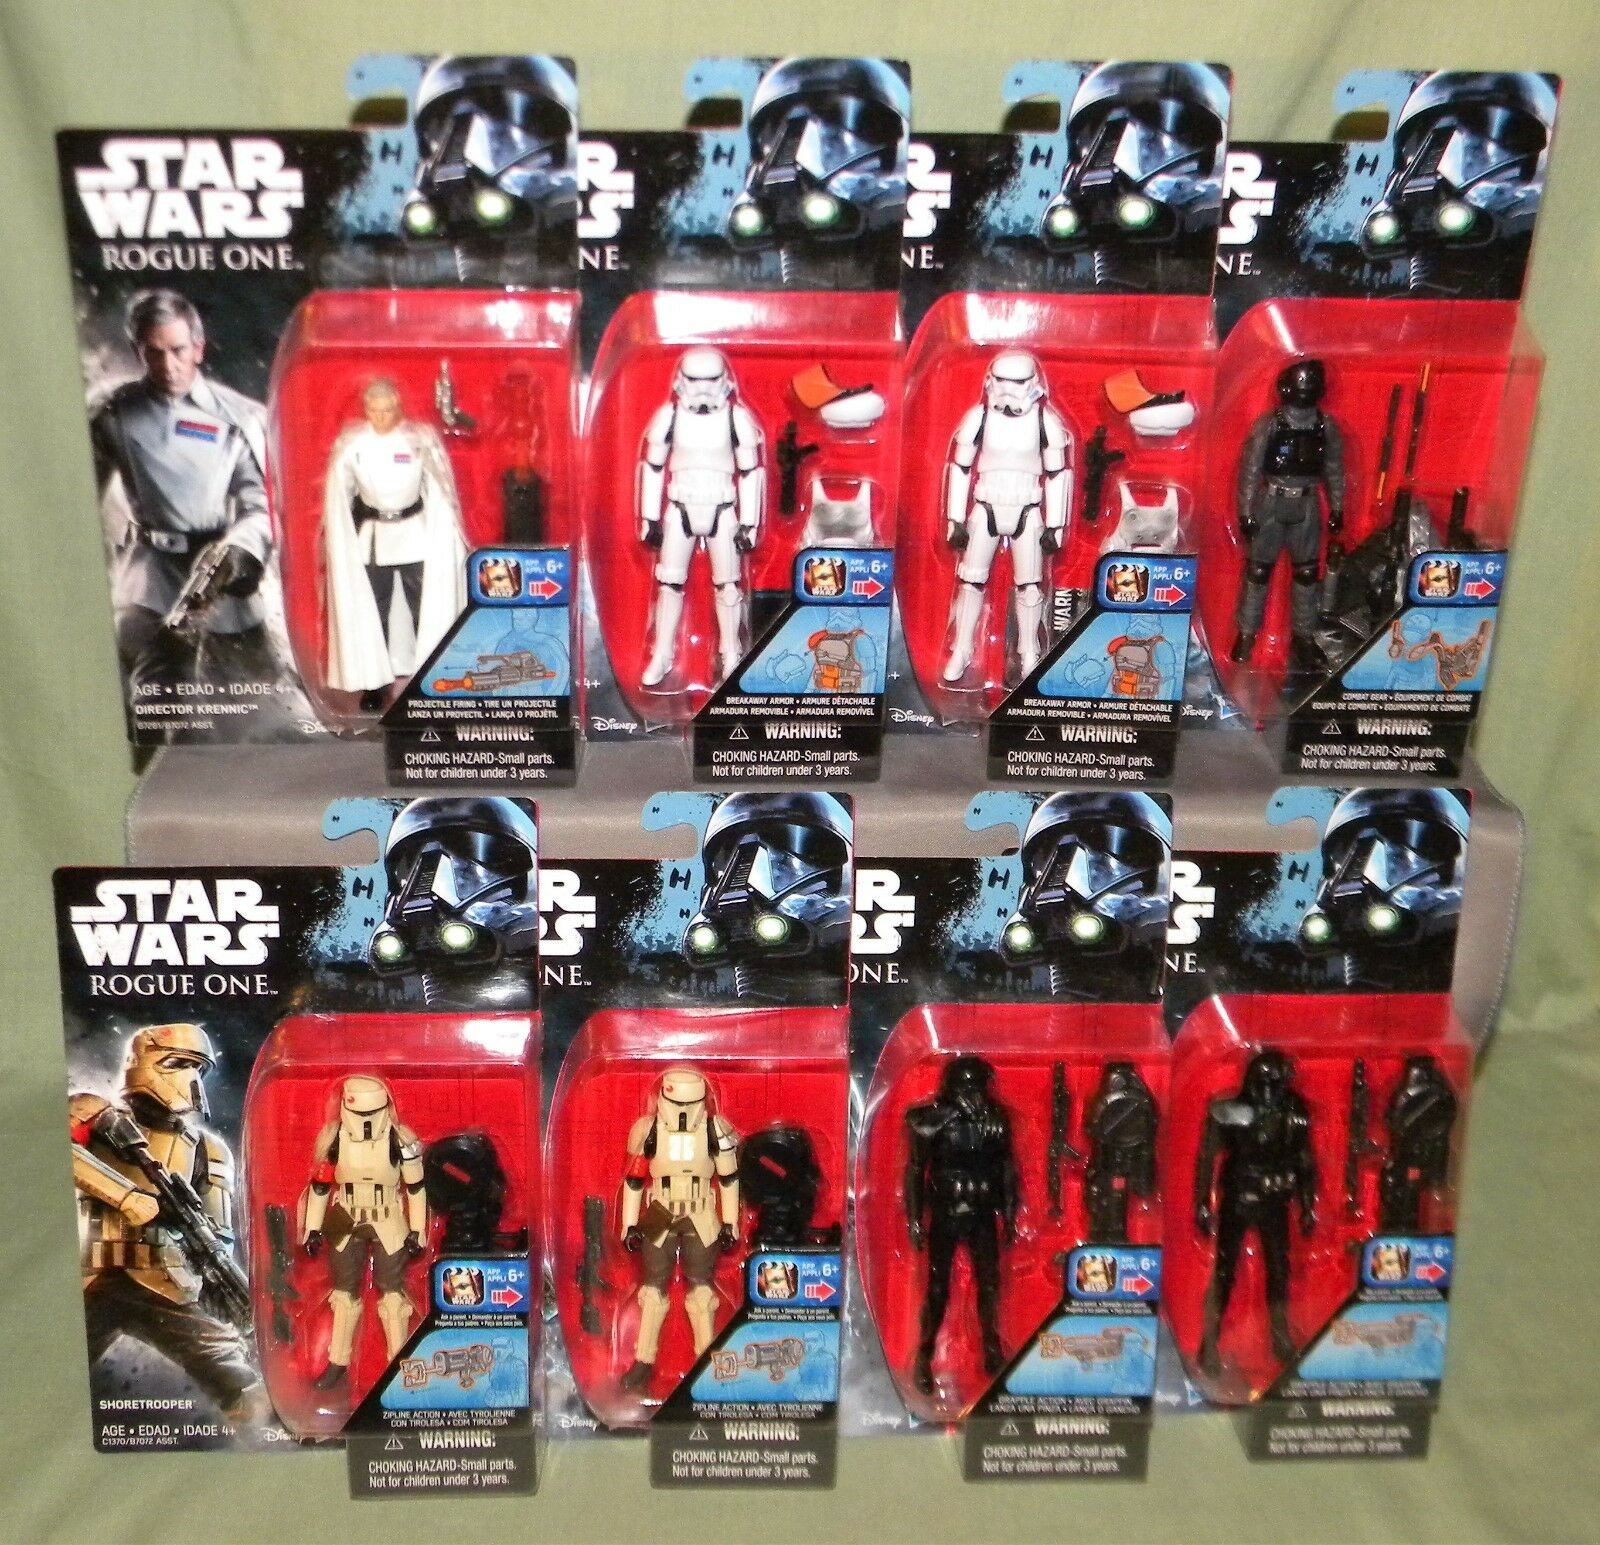 IMPERIAL ARMY Stormtrooper Krennic Ground Death Shore Rogue One 3.75  Figure